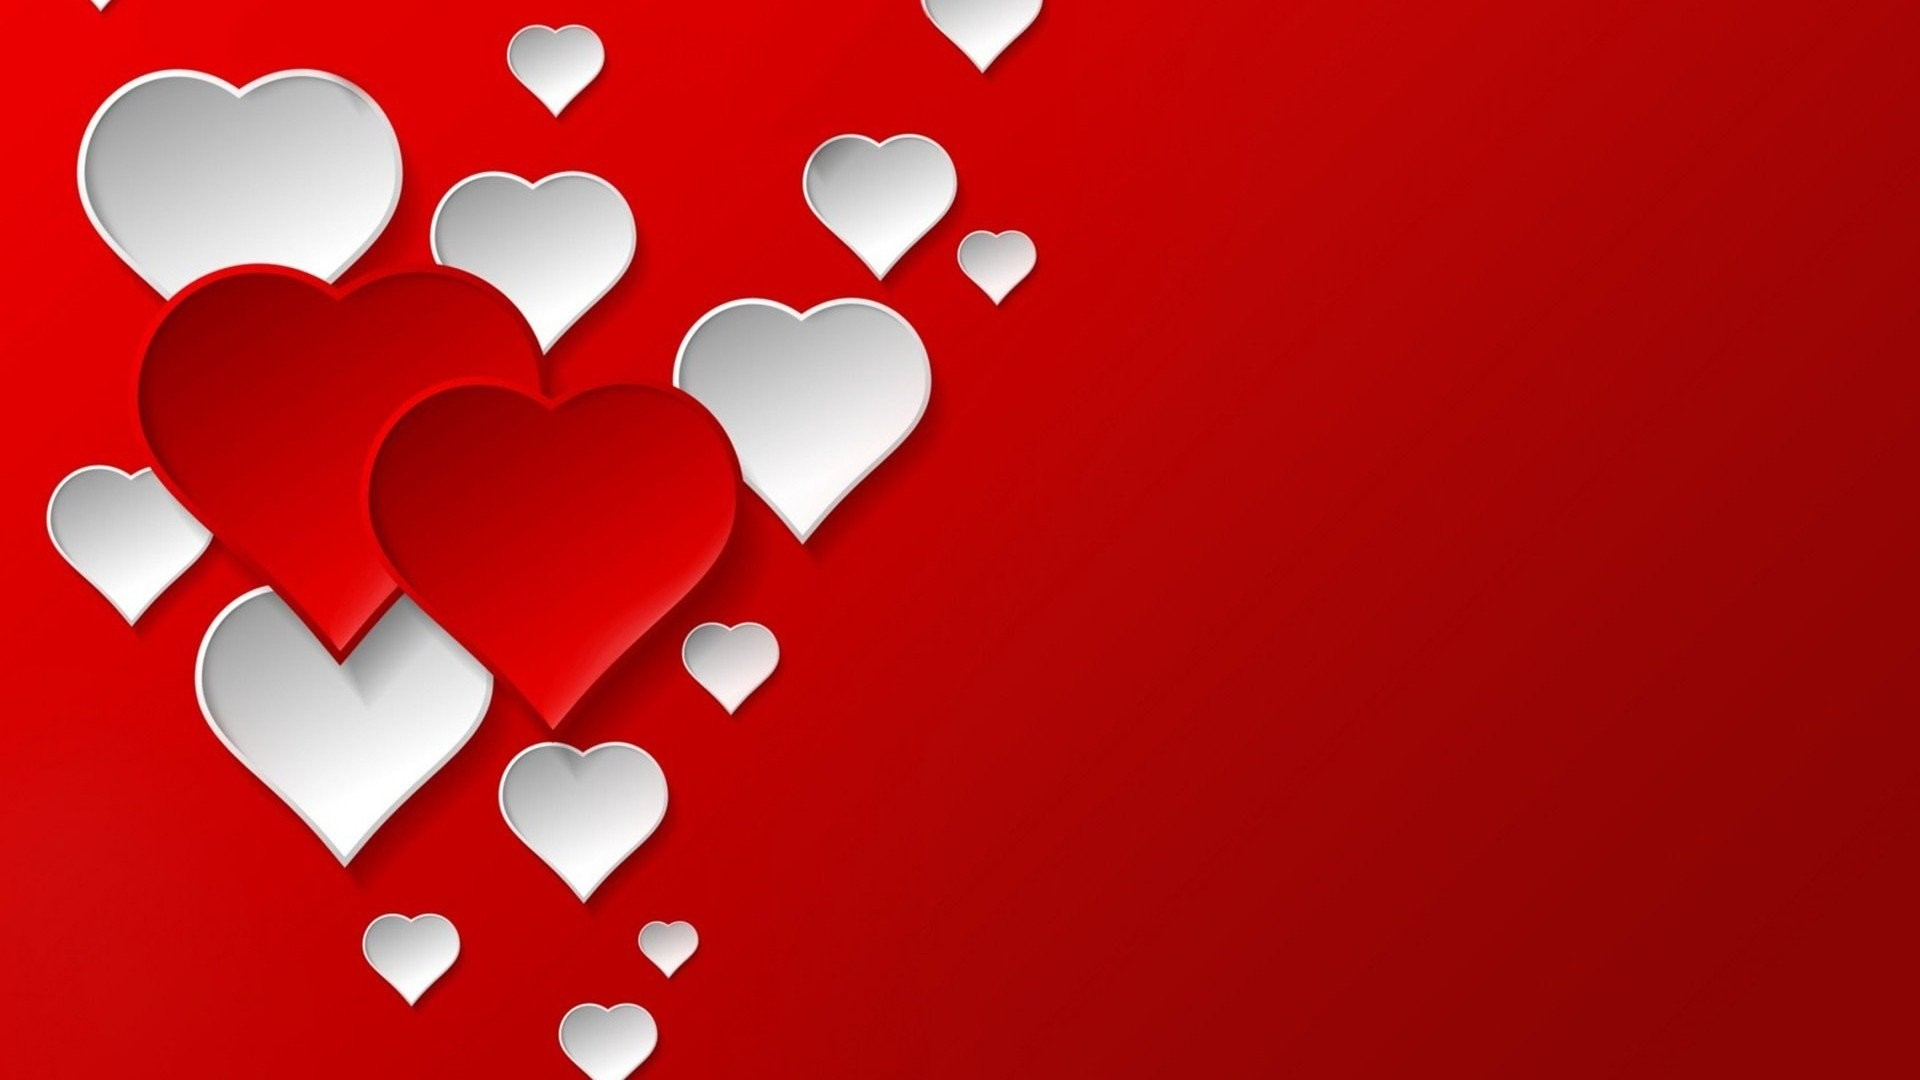 VALENTINES DAY mood love holiday valentine heart wallpaper | |  617663 | WallpaperUP